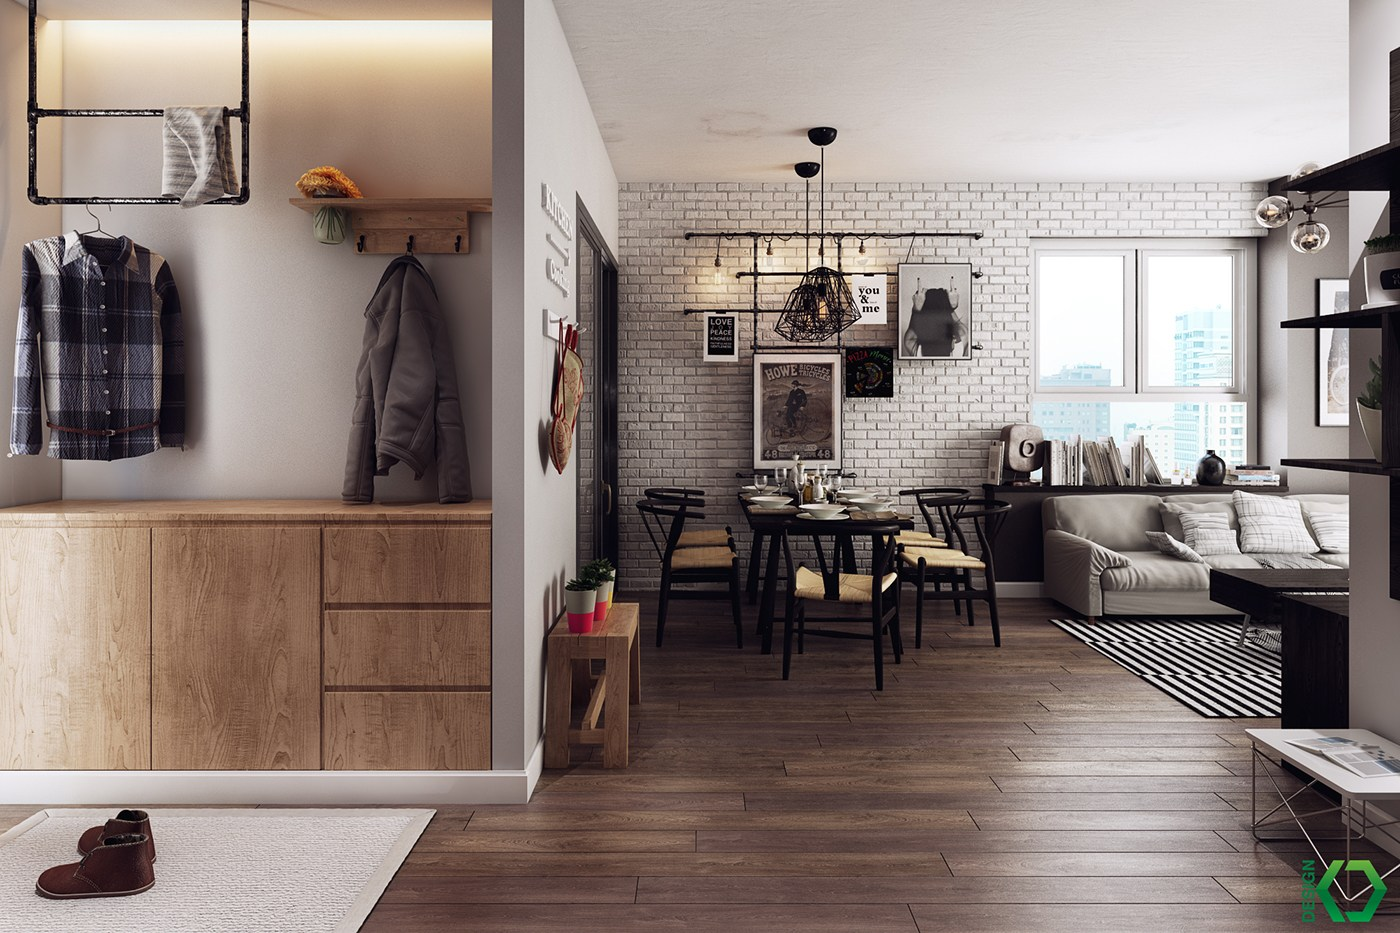 One Bedroom Apartment Floor Plans A Charming Eclectic Home Inspired By Nordic Design